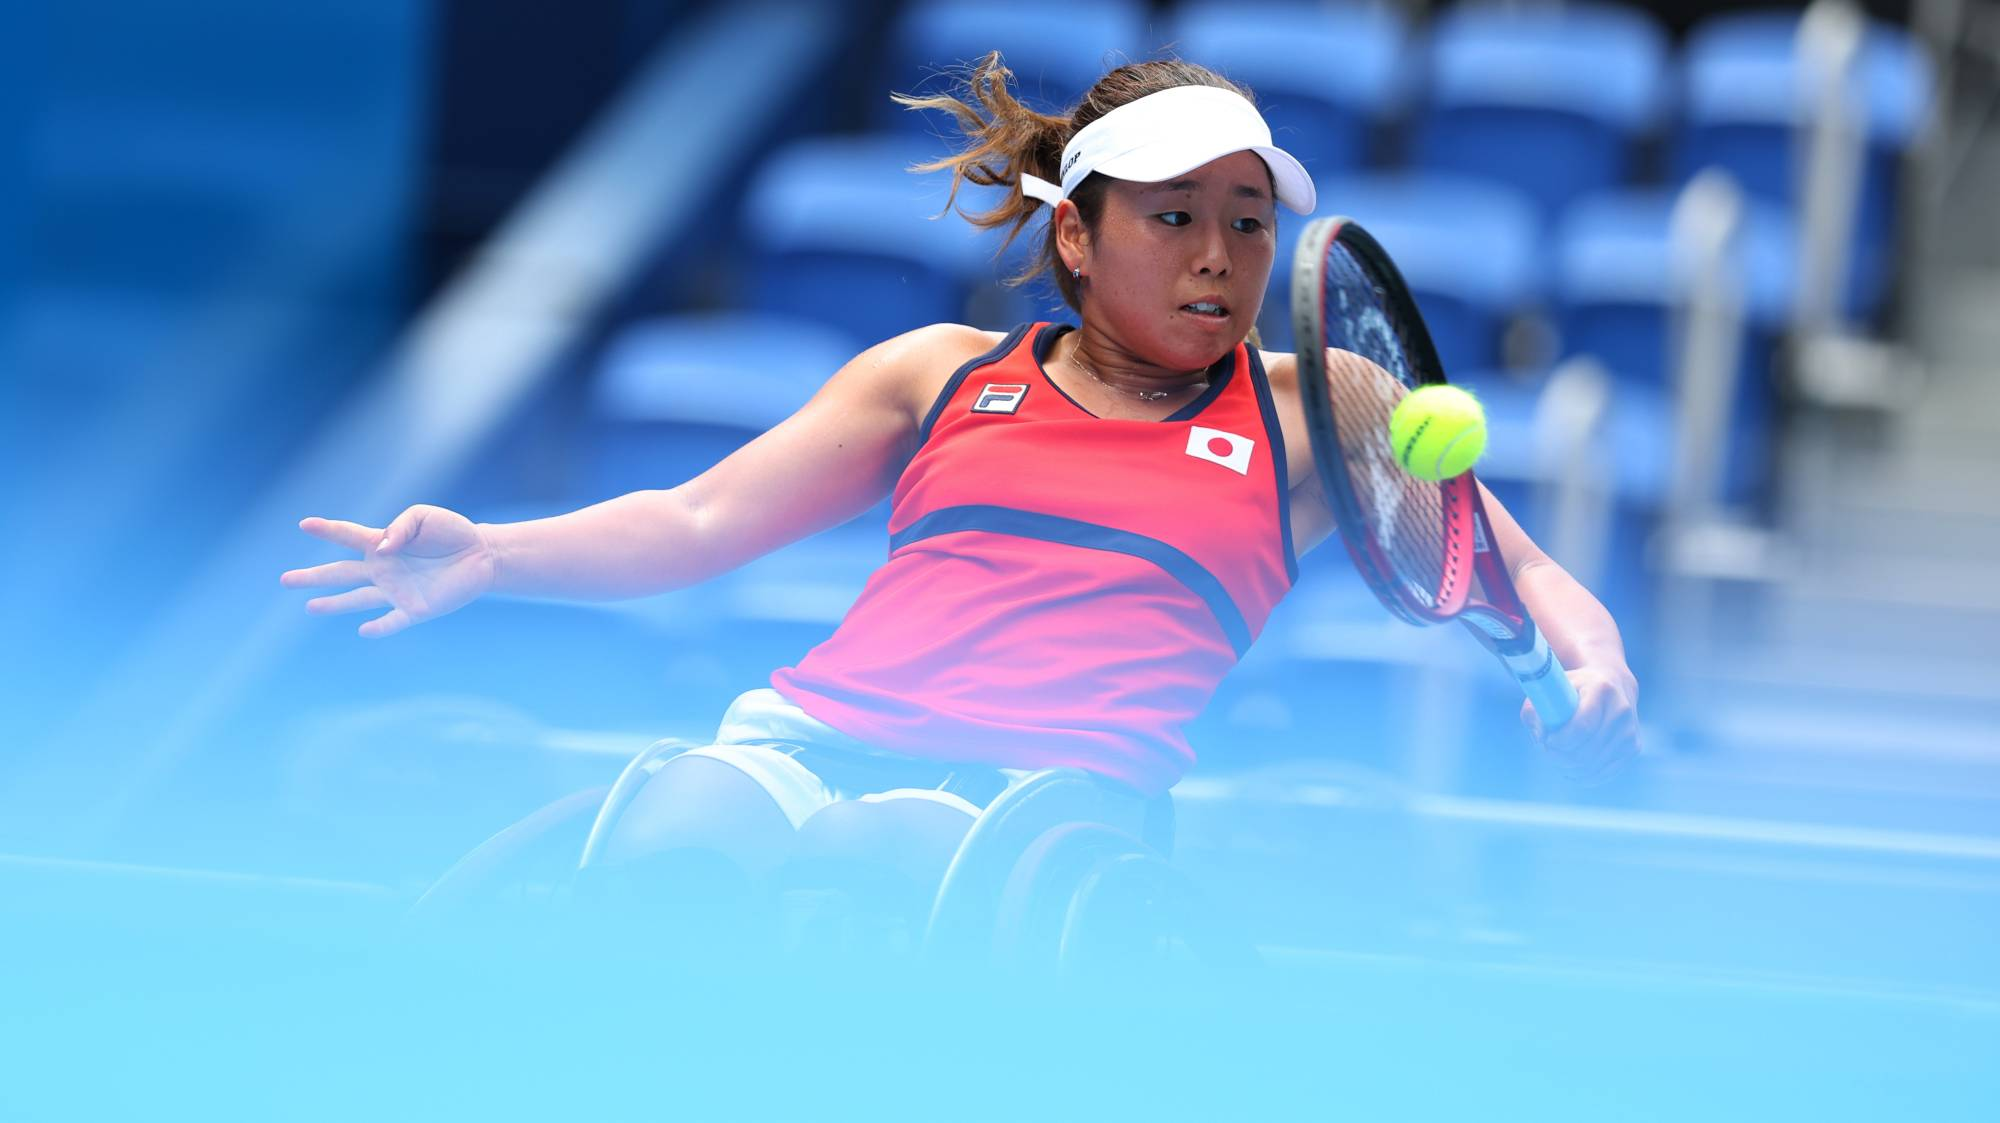 Yui Kamiji of Japan in action against Zhenzhen Zhu of China in the quarterfinal of the women's wheelchair tennis competition   REUTERS